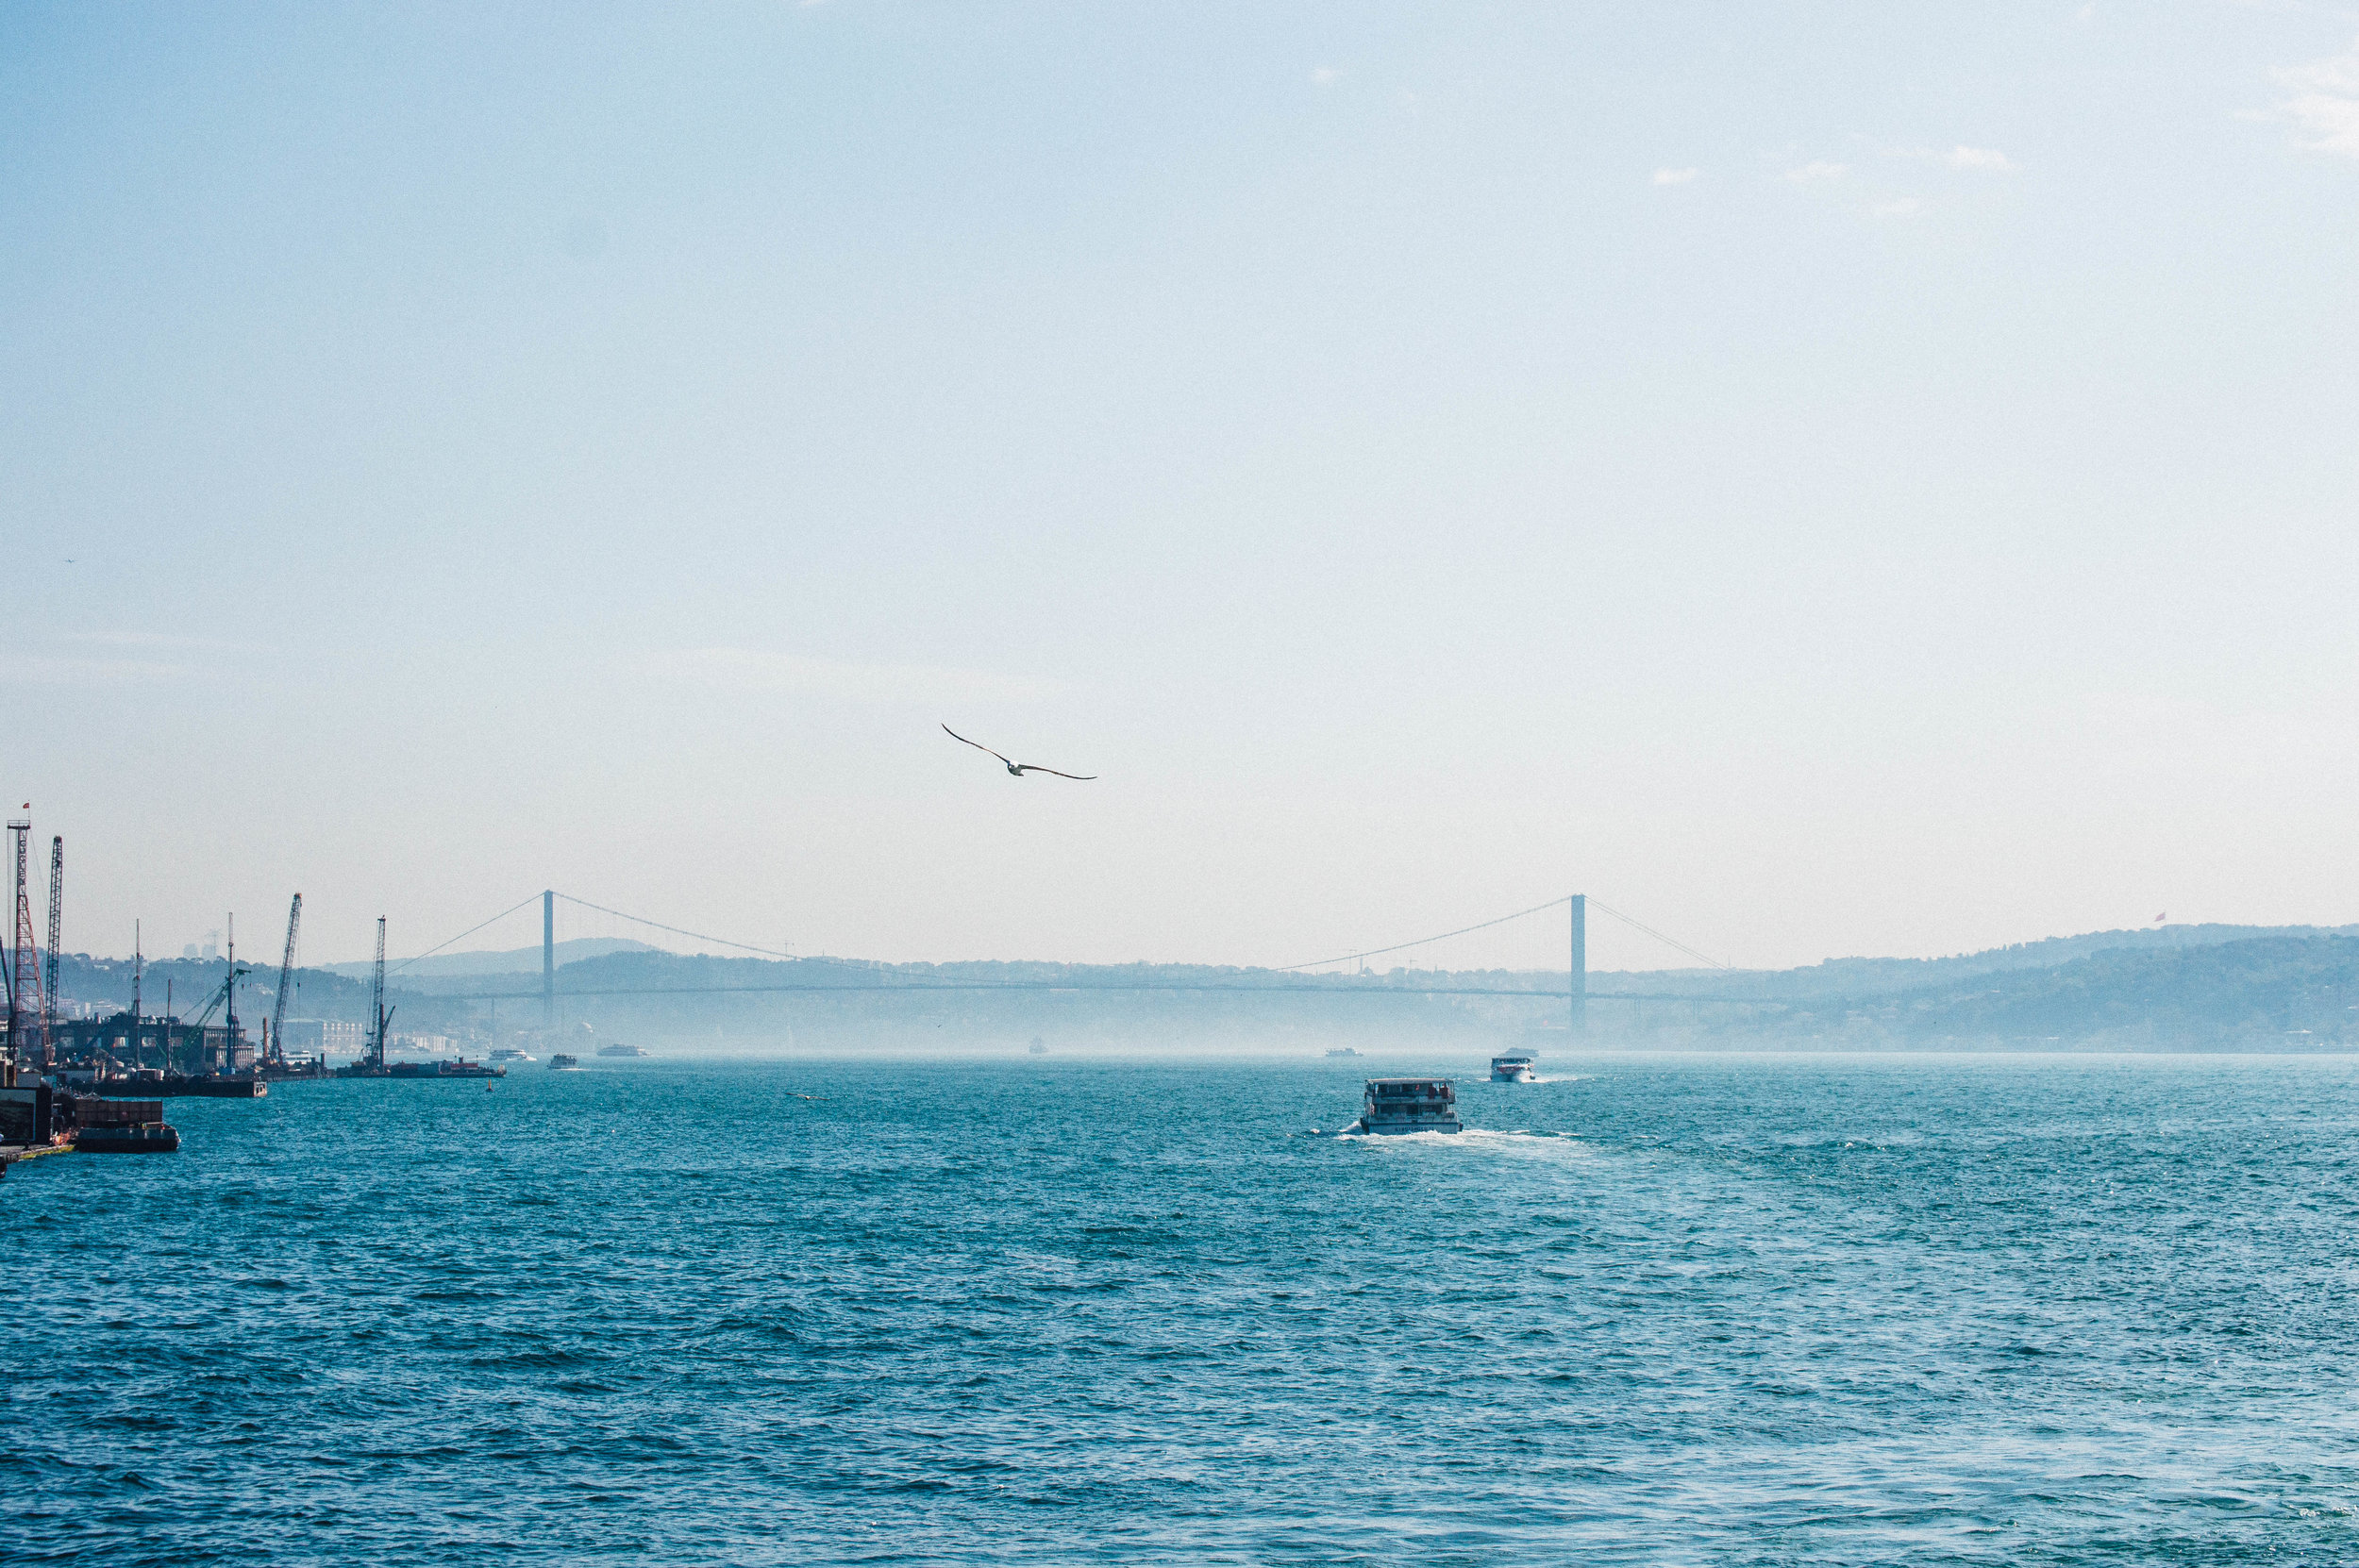 The Bosphorus Bridge in the distance connects Europe and Asia